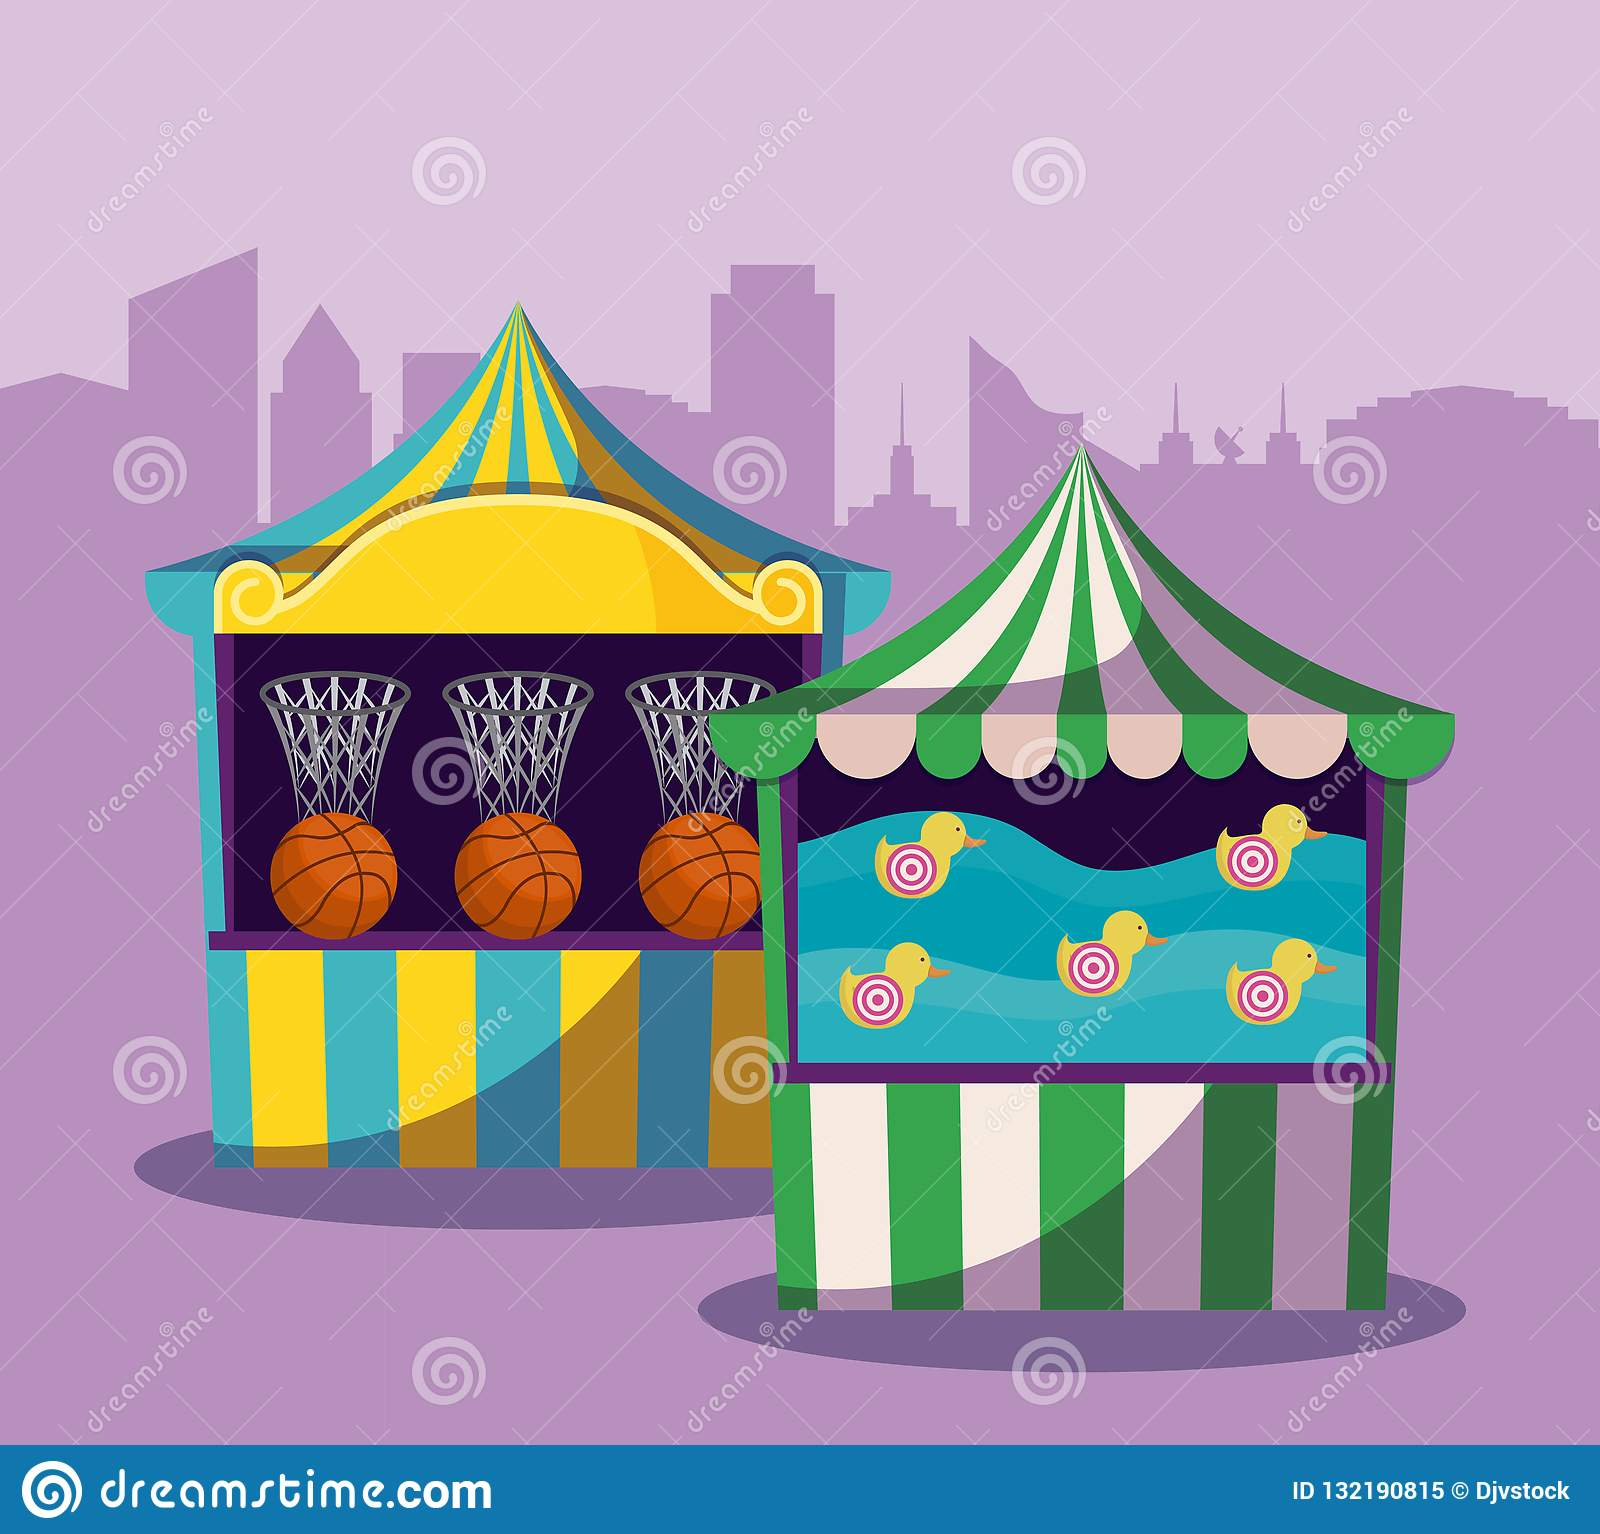 Set of circus tents with games